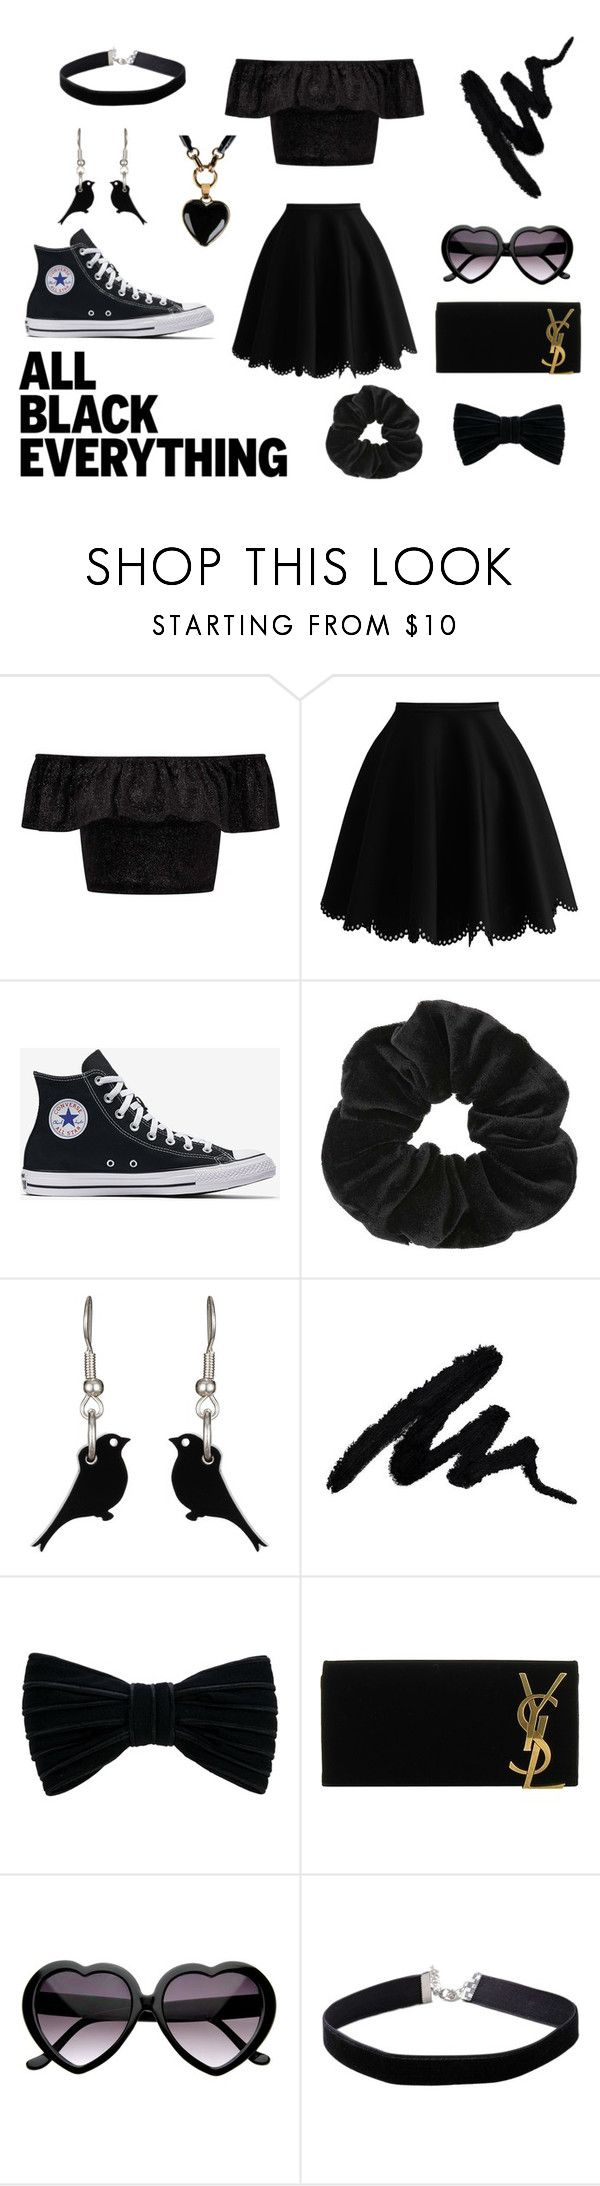 """widow nymph"" by electrasweetheart on Polyvore featuring Miss Selfridge, Alexandre Birman, Yves Saint Laurent, Emilio Pucci and allblackoutfit"